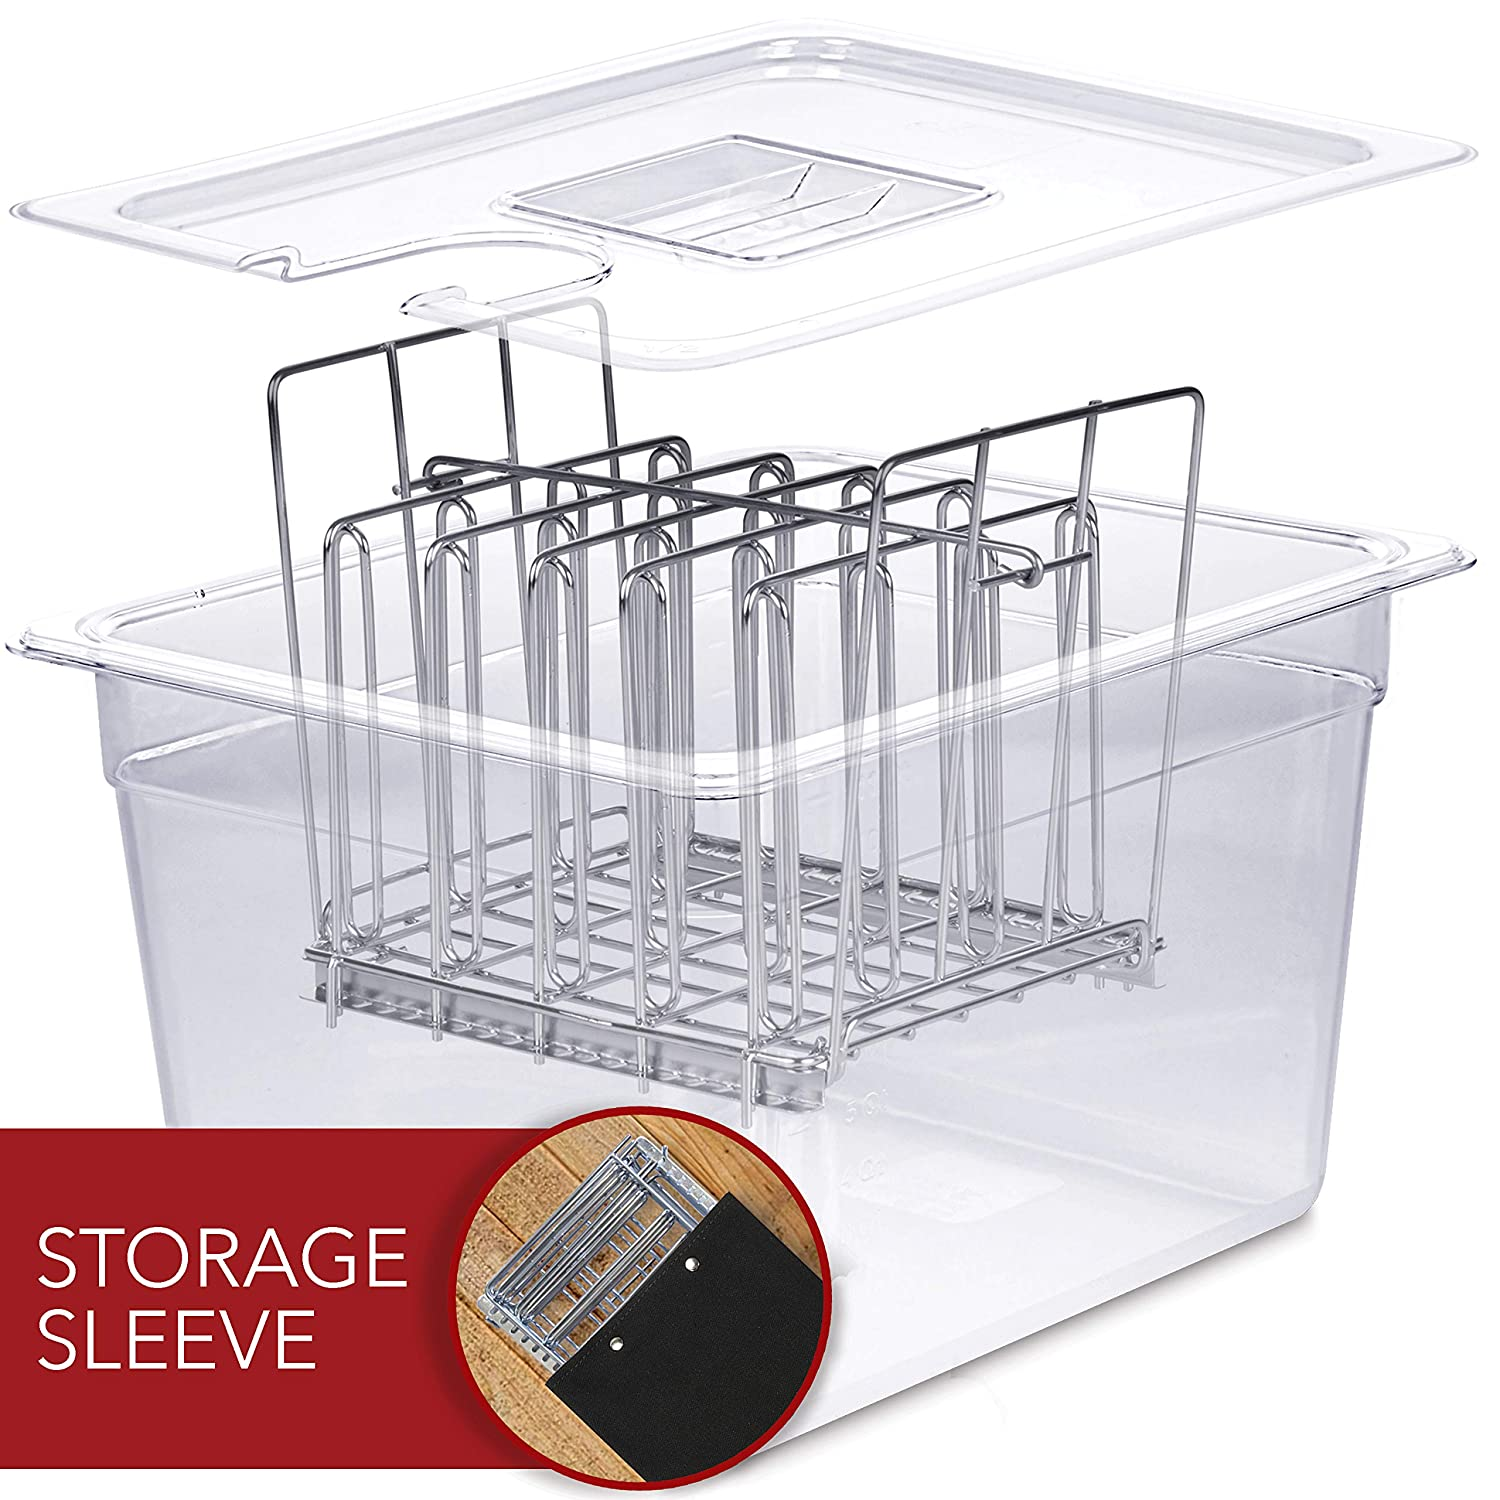 VÄESKE Sous Vide Container with Lid & Rack Set - 12 Quart Accessories Kit for Most Sous Vide Cookers - Durable Polycarbonate and Rust-Resistant Stainless Steel